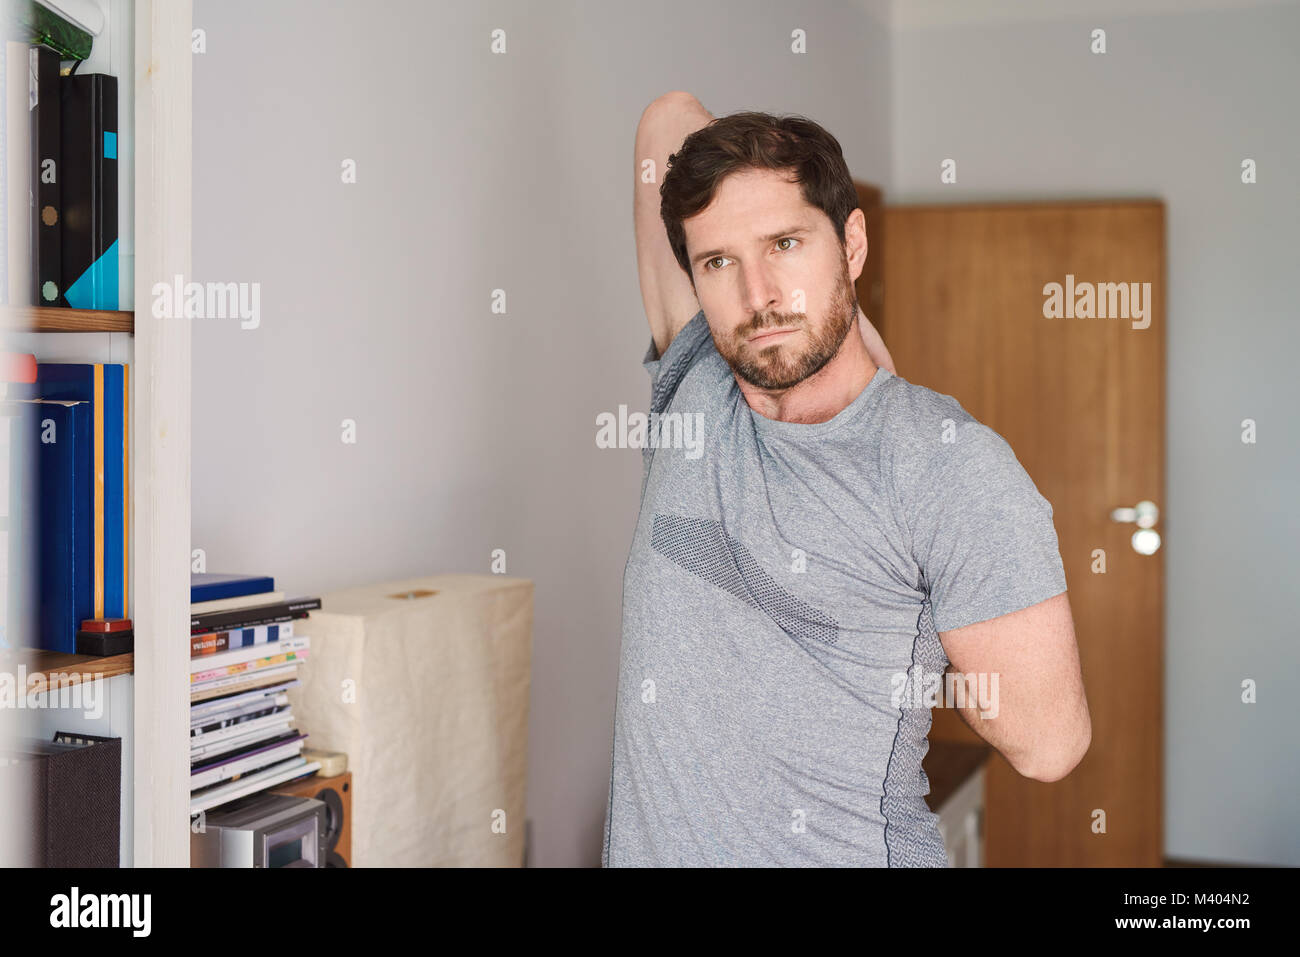 Young man in sportswear stretching before working out at home - Stock Image